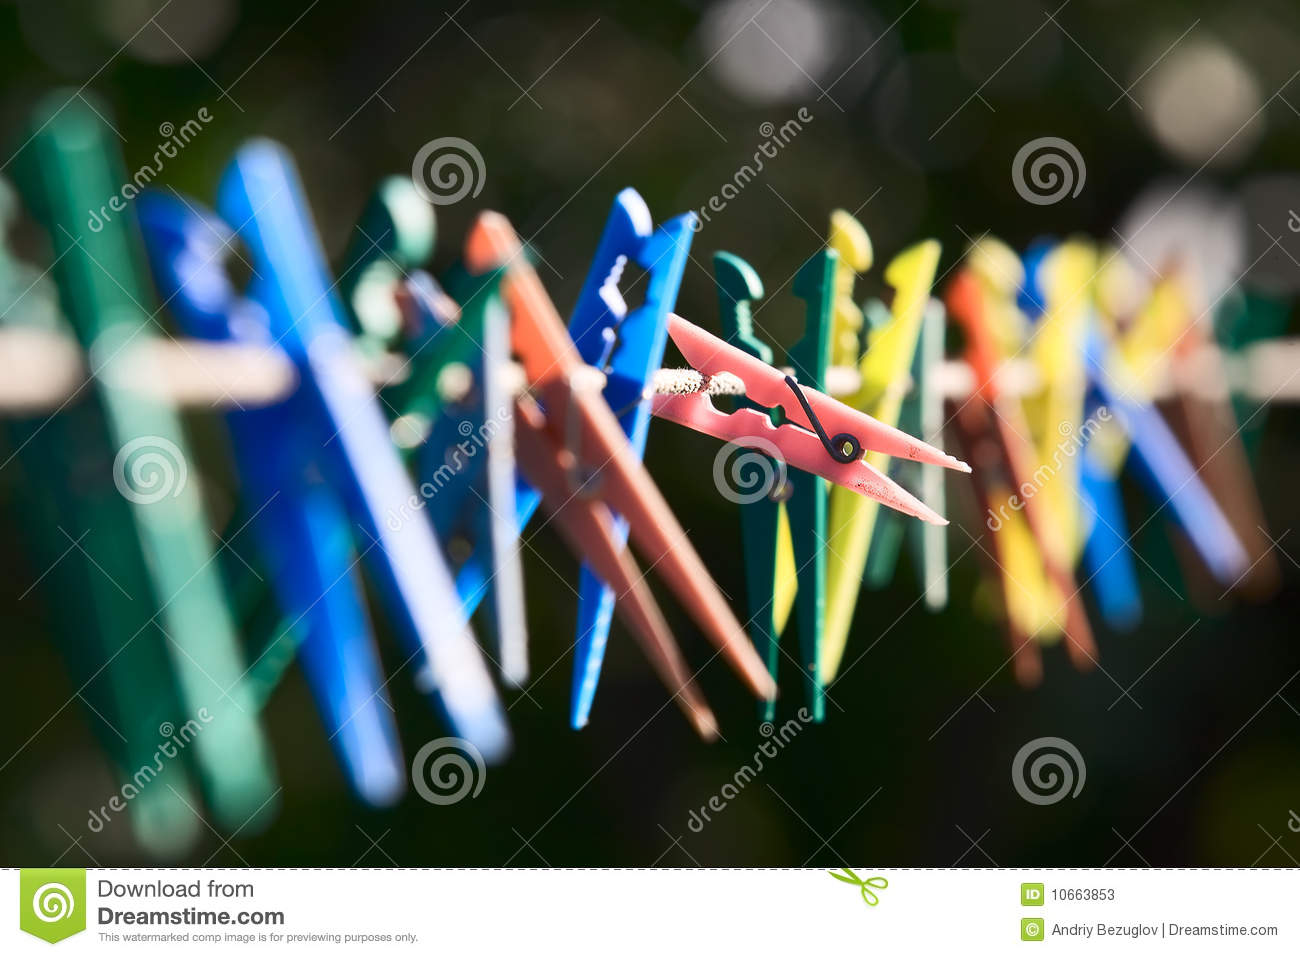 Colorful clothes-pegs